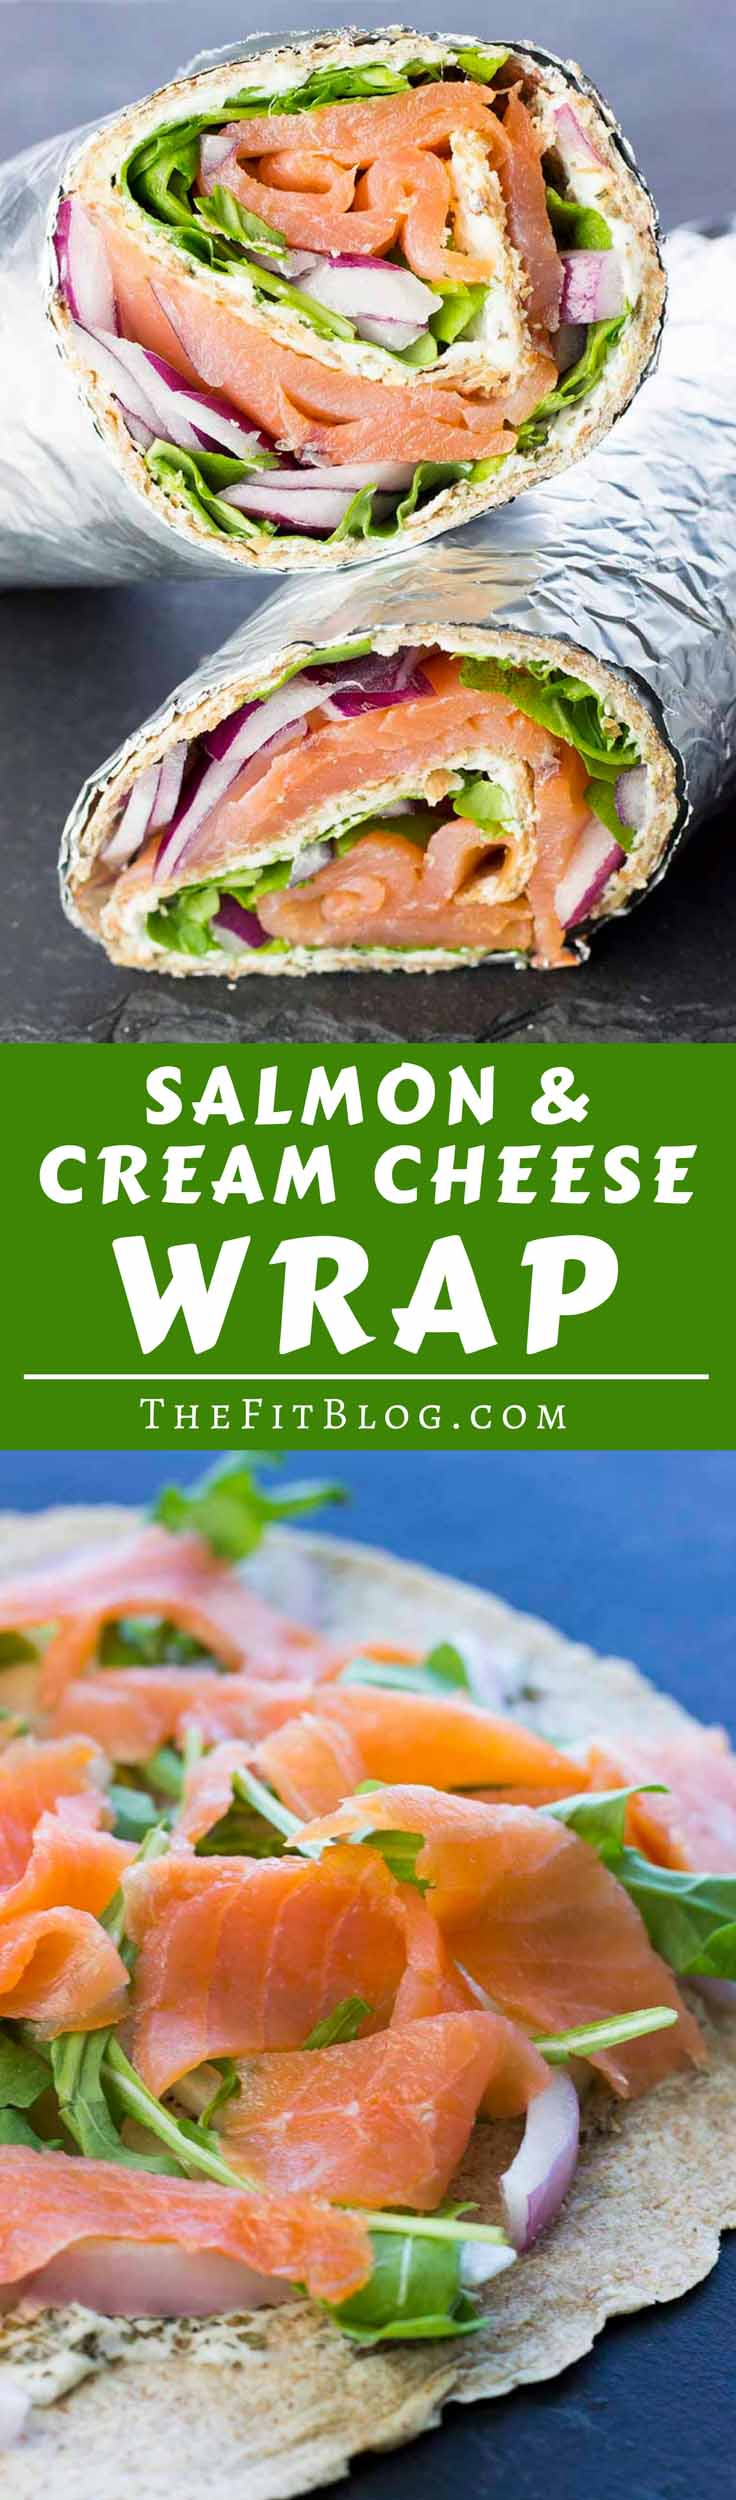 Smoked Salmon And Cream Cheese Wraps Diabetes Strong